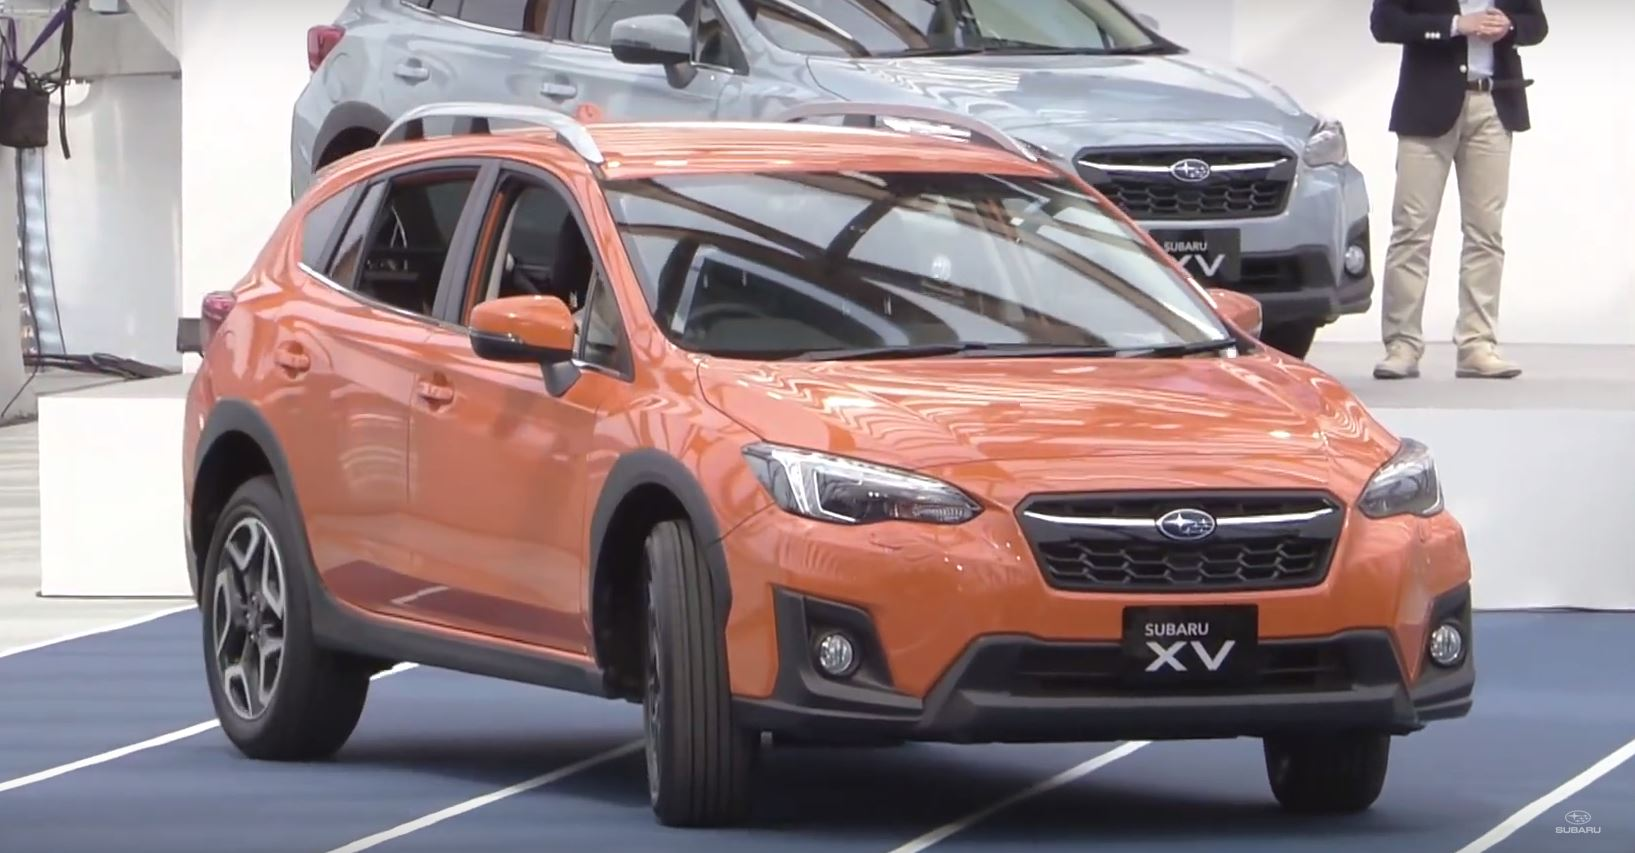 2018 Subaru XV Launched in Japan With 1 6-liter 115 HP